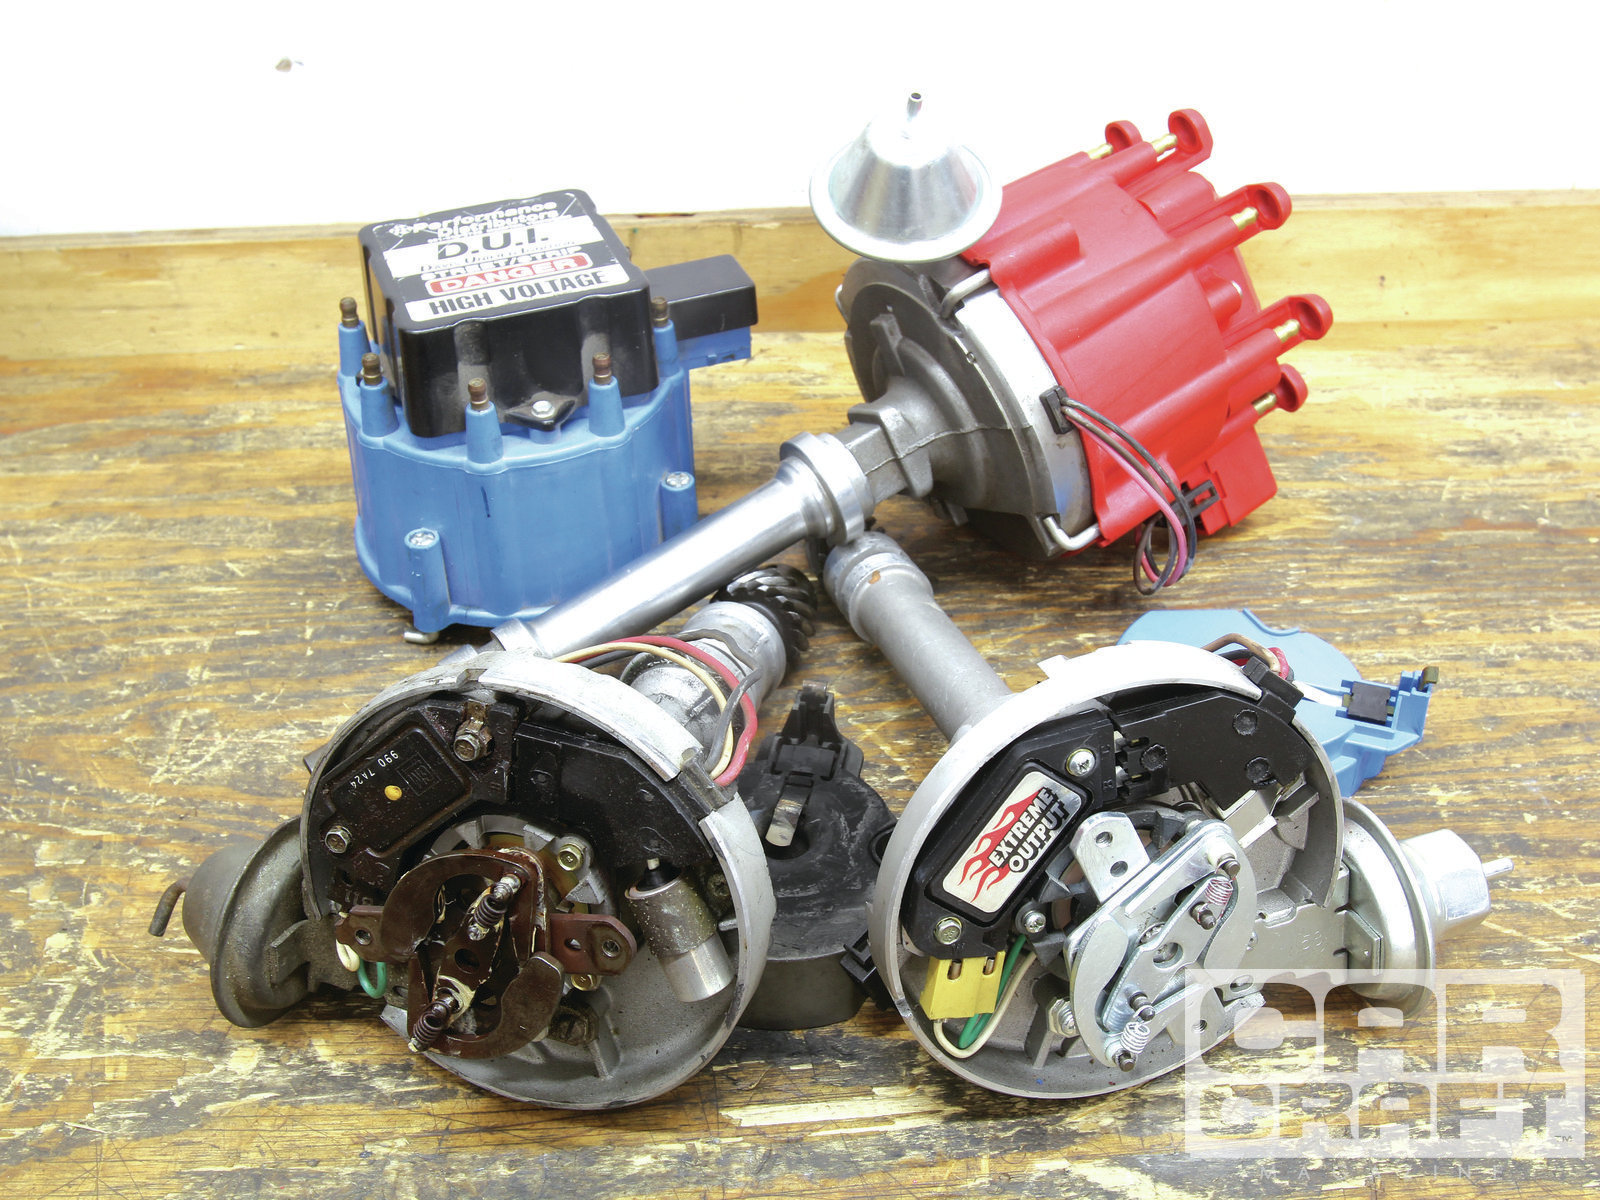 Rather than spend $150 or more on a trick aftermarket distributor, you can build your own high-perf HEI for a lot less that will perform just as well.